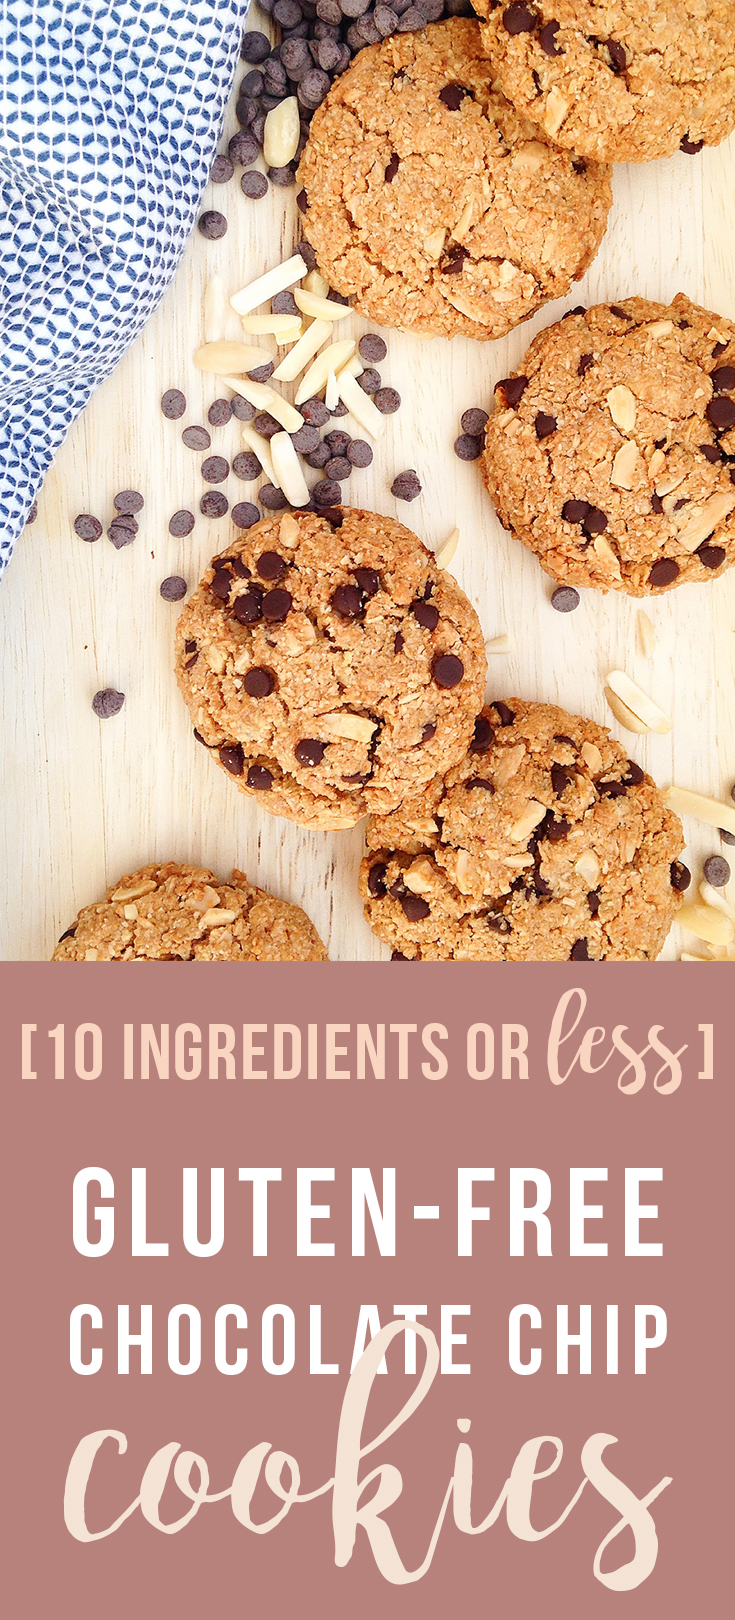 10 Ingredients or Less: these easy Gluten-Free Chocolate Chip Cookies are simple and delicious with less sugar, and no gluten, preservatives, or artificial flavors. Click to read the recipe or pin to save for later! | GrokGrub.com #glutenfree #healthy #cookies #10ingredientsorless